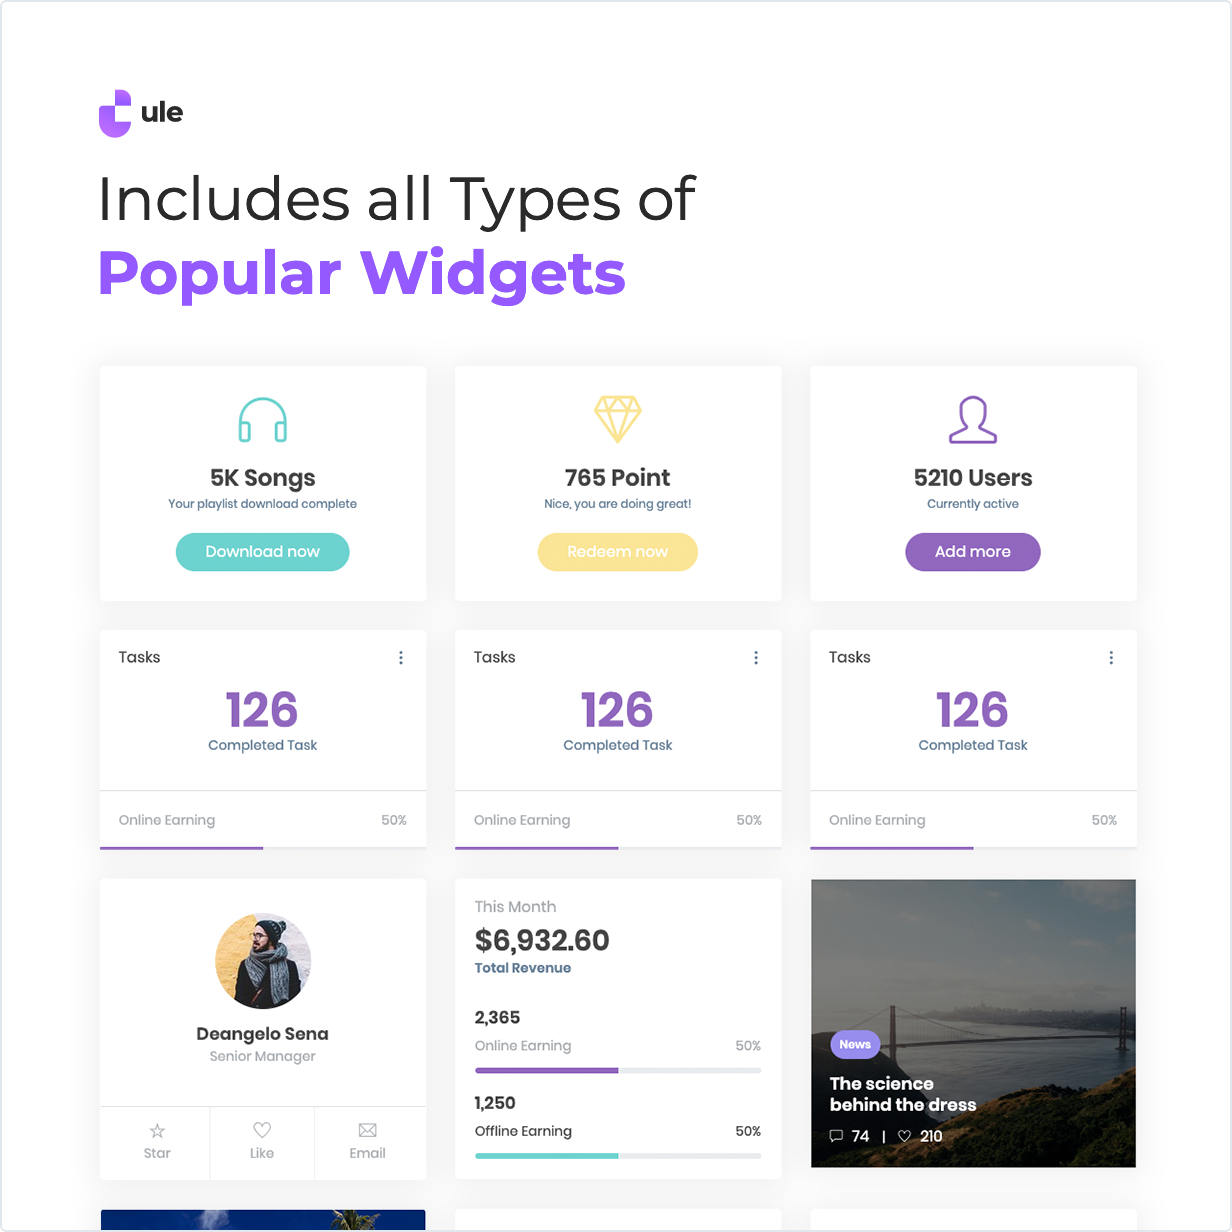 Ule Bootstrap Dashboard Includes all Types of Popular Widgets